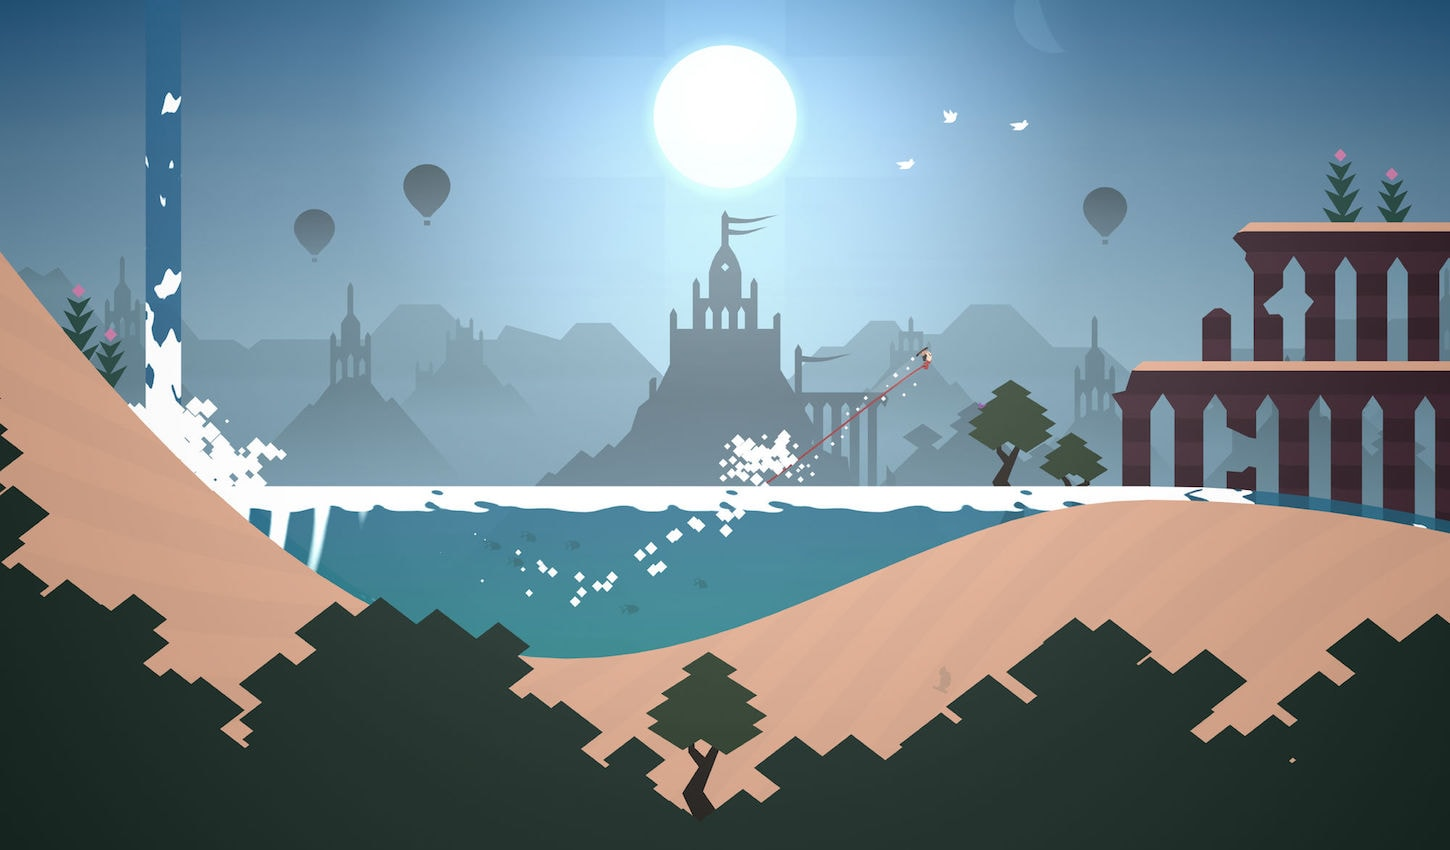 1. Alto's Odyssey – The Best Offline Mobile Game in Our List